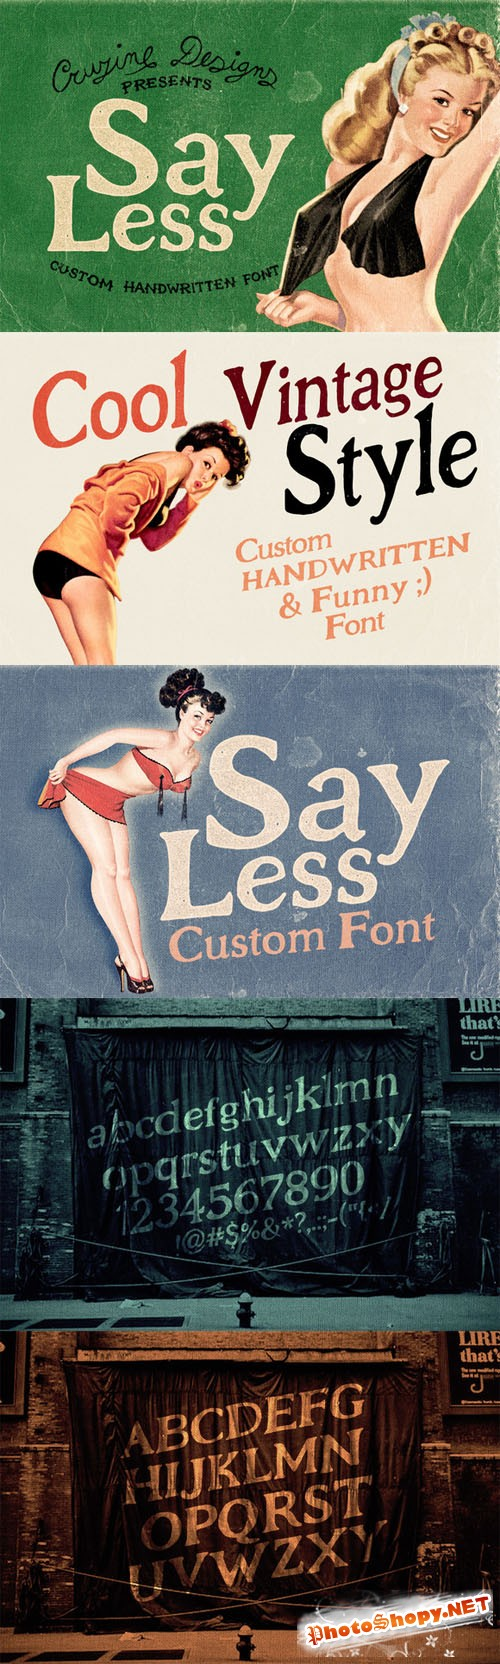 Say Less Custom Font - Creativemarket 77254